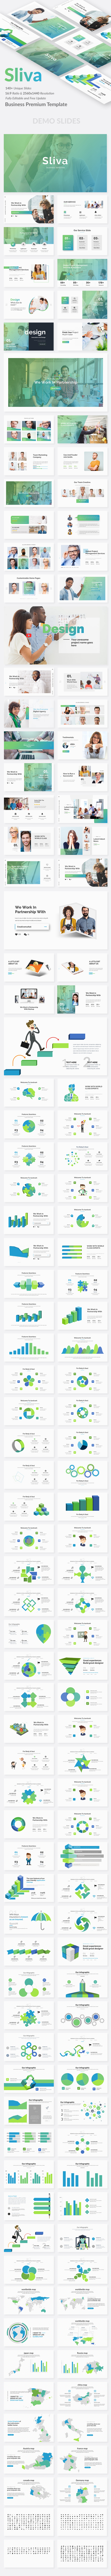 Sliva Business Google Slide Template - Google Slides Presentation Templates